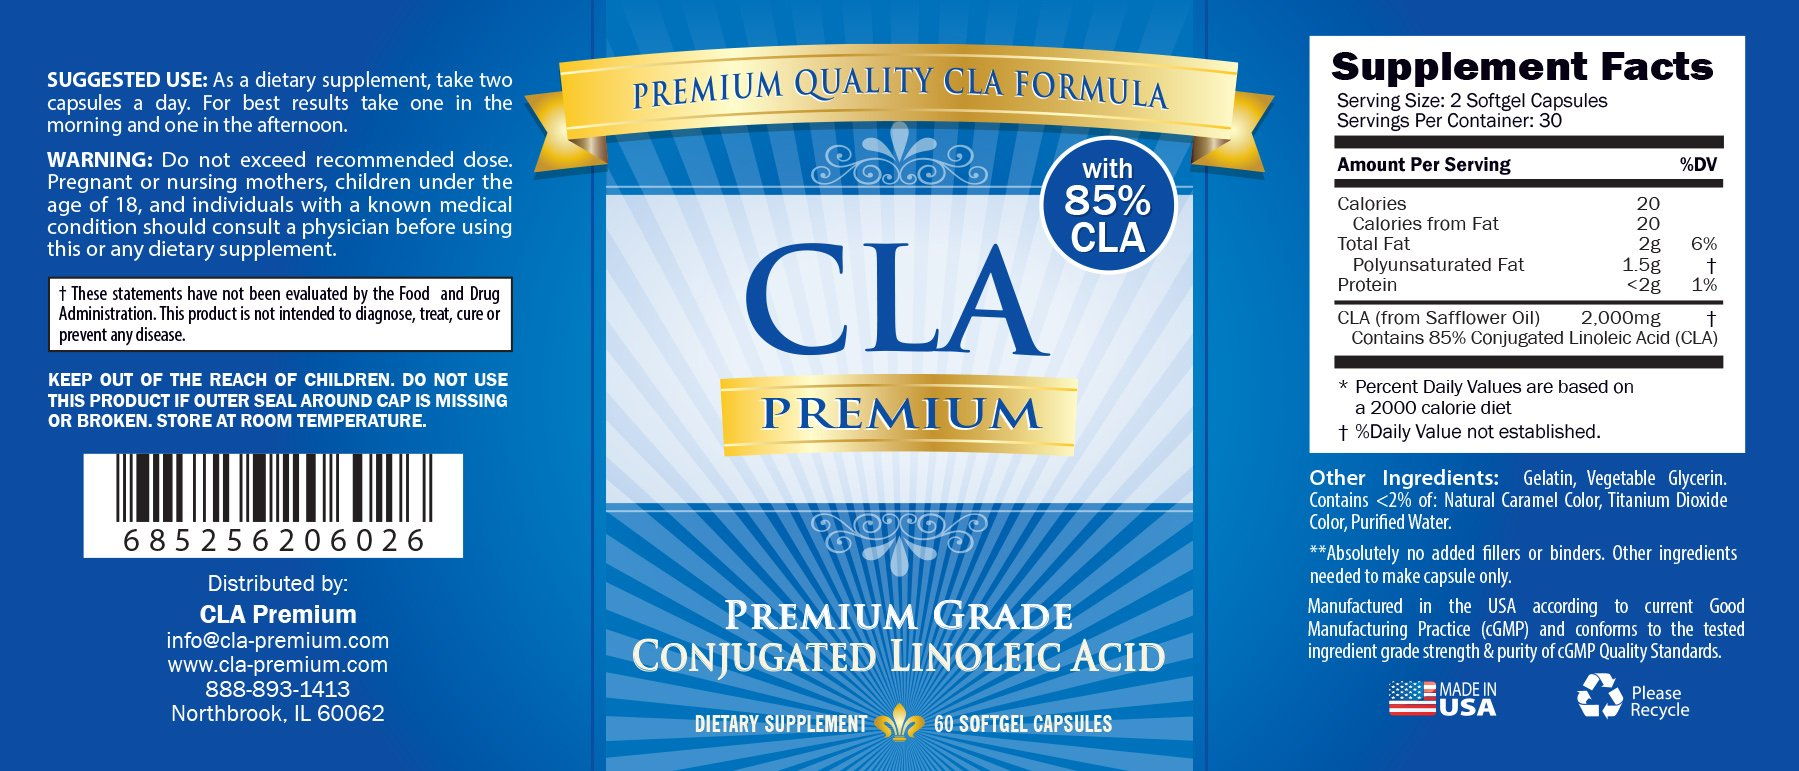 CLA PREMIUM: 100% PURE Conjugated Linoleic Acid - 2000mgs - 60 Capsules - 1 Month Supply - Natural Weight Loss Management - 90 Days 100% Money Back Guarantee - 85% CLA from Safflower Oil by CLA Premium (Image #5)